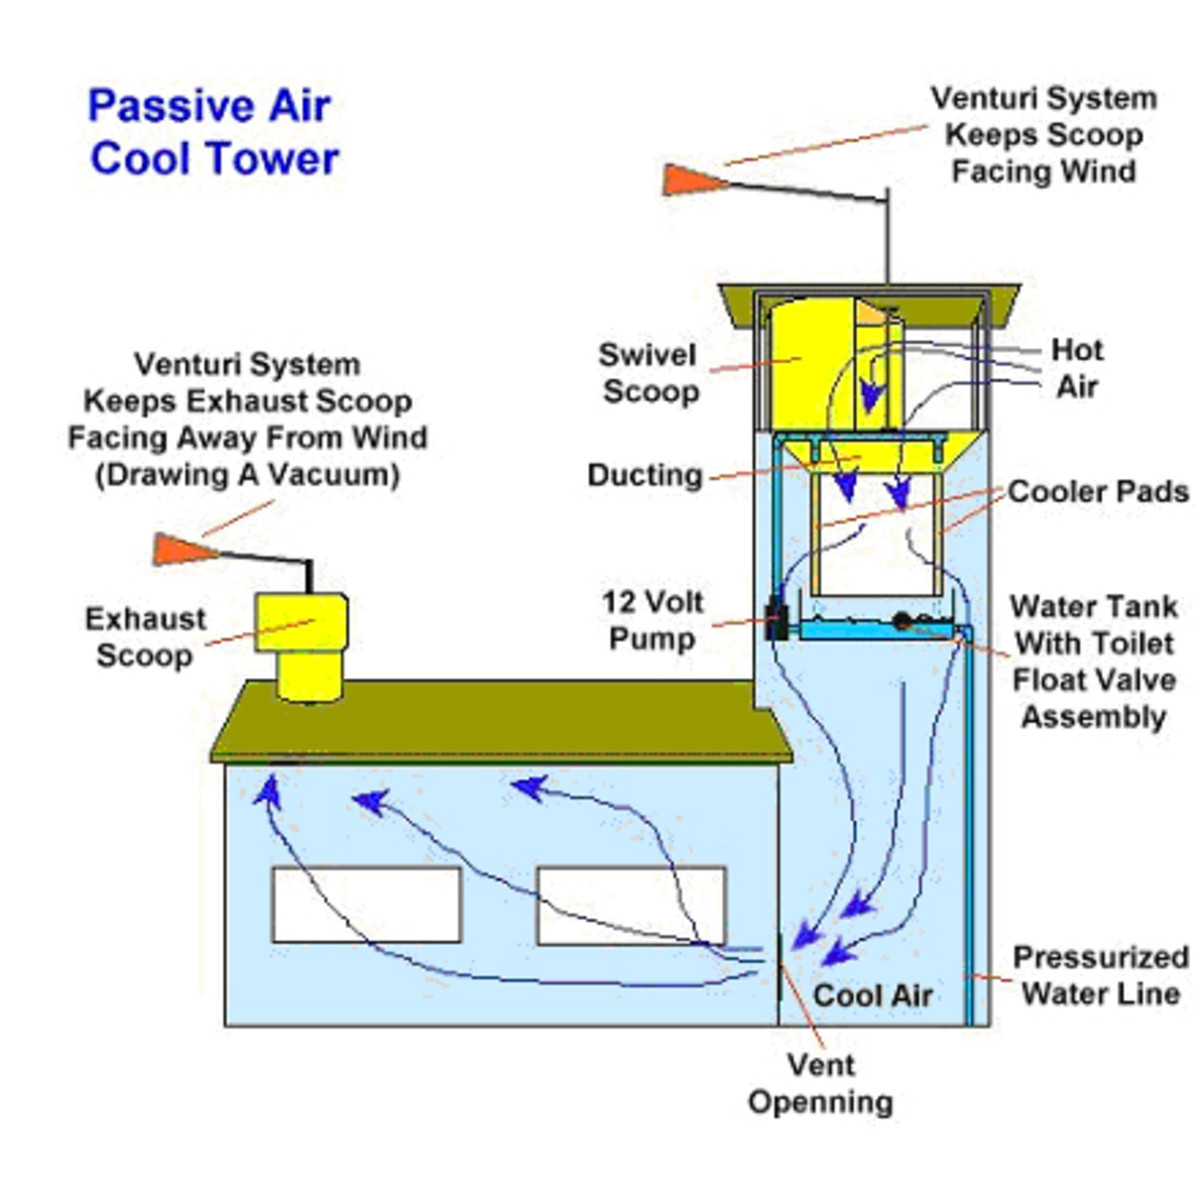 Integration of passive downdraft evaporative cooling with a solar chimney